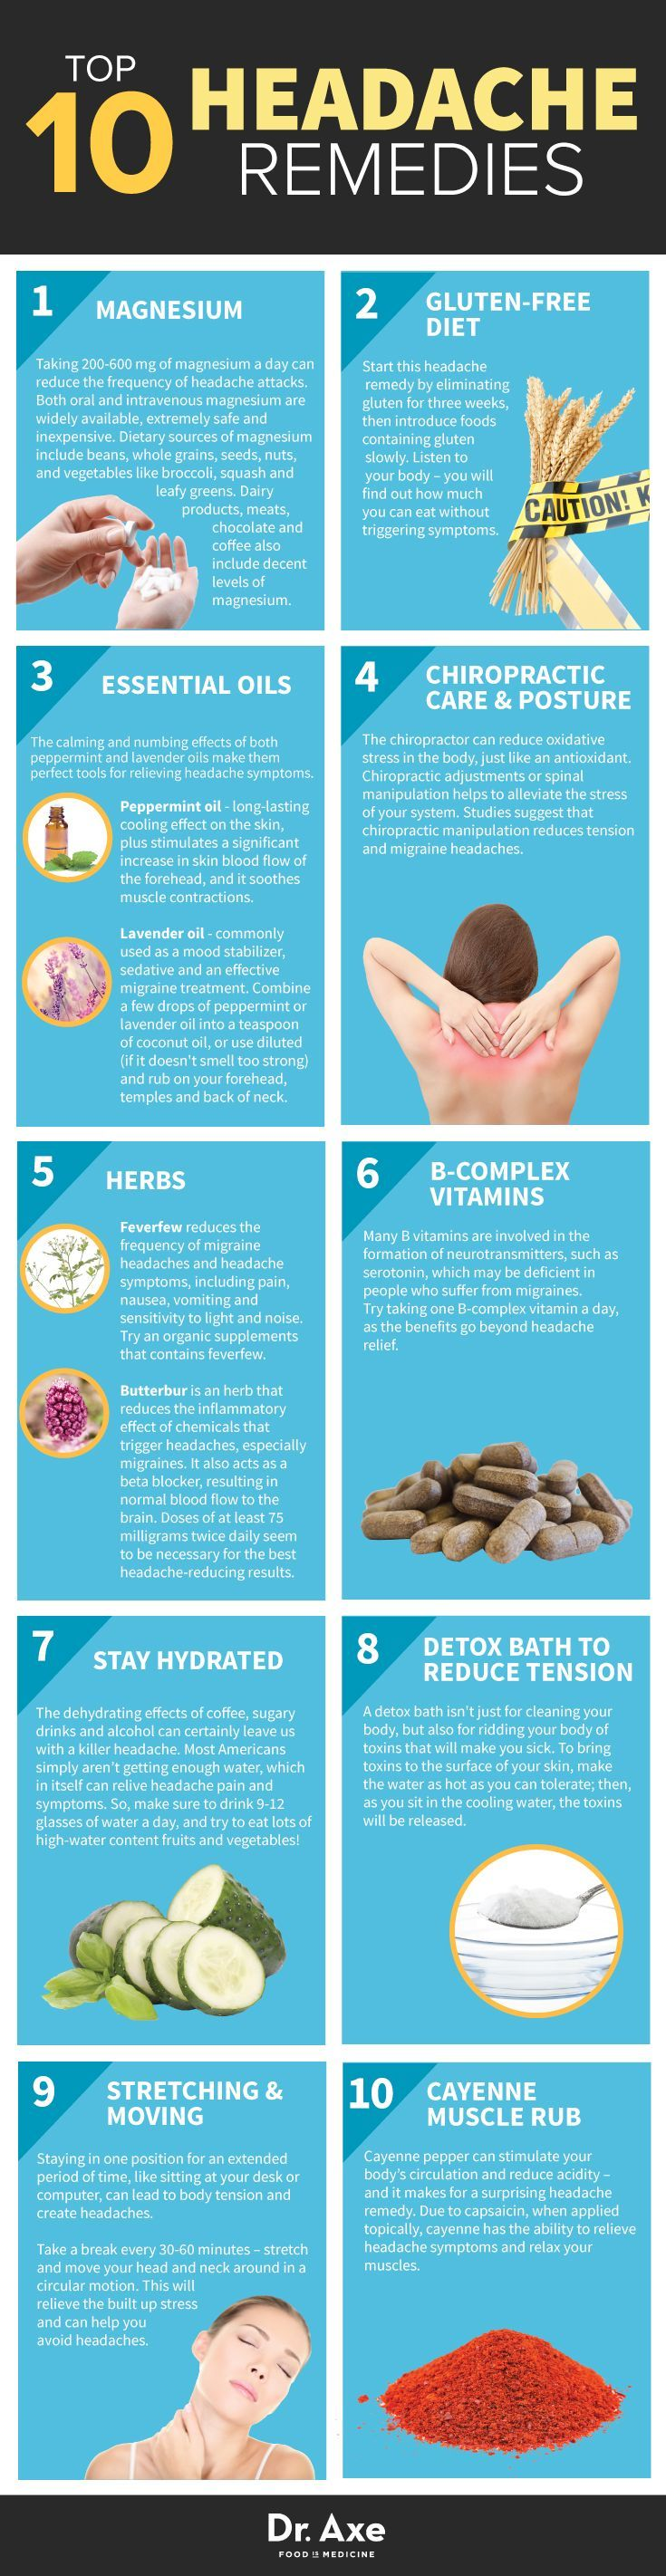 Headache Remedies http://www.draxe.com #health #holistic #natural natural health tips, natural health remedies